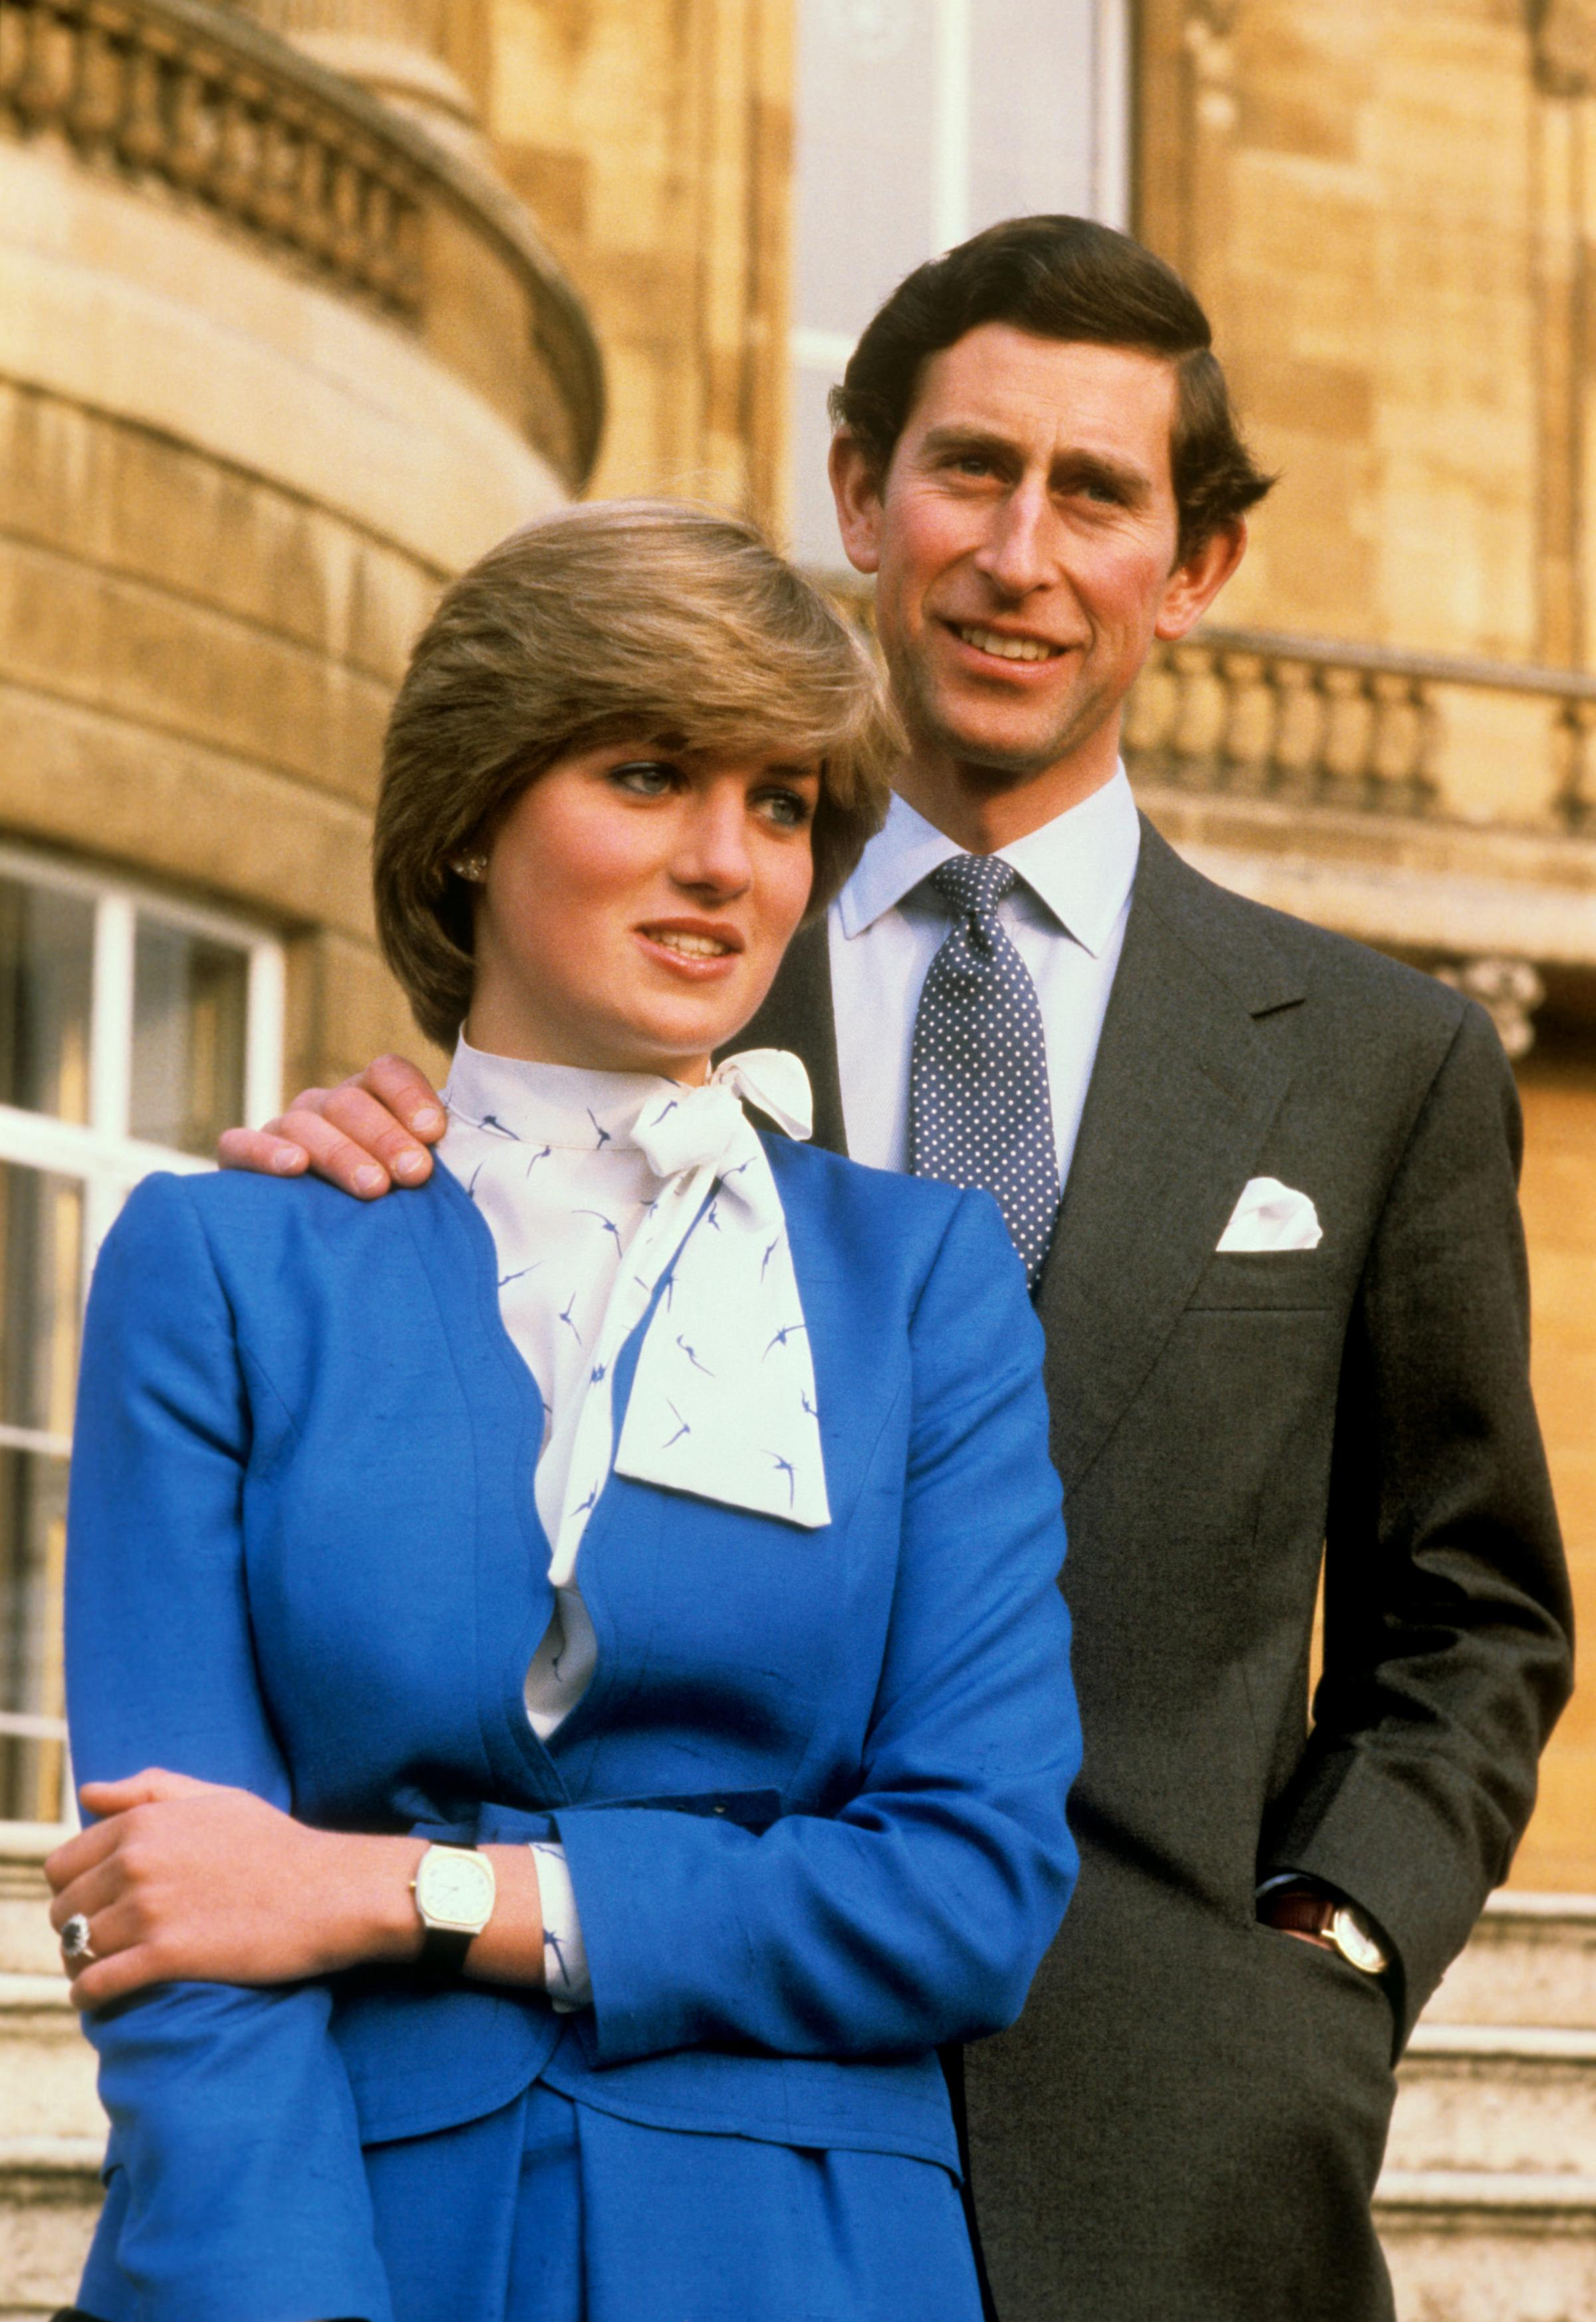 TV: Broadcasting the Diana tapes would be a cynical and badly judged move by Channel 4.